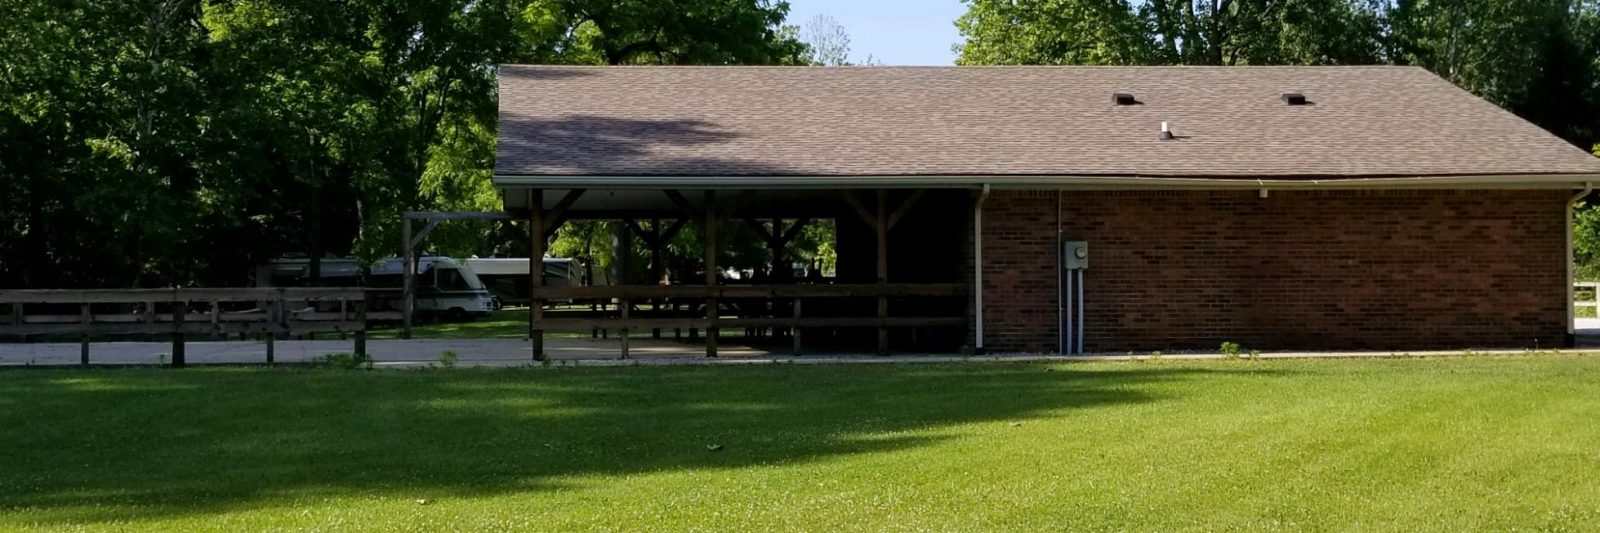 Thorntree Lake – Mobile Home Park & Campground